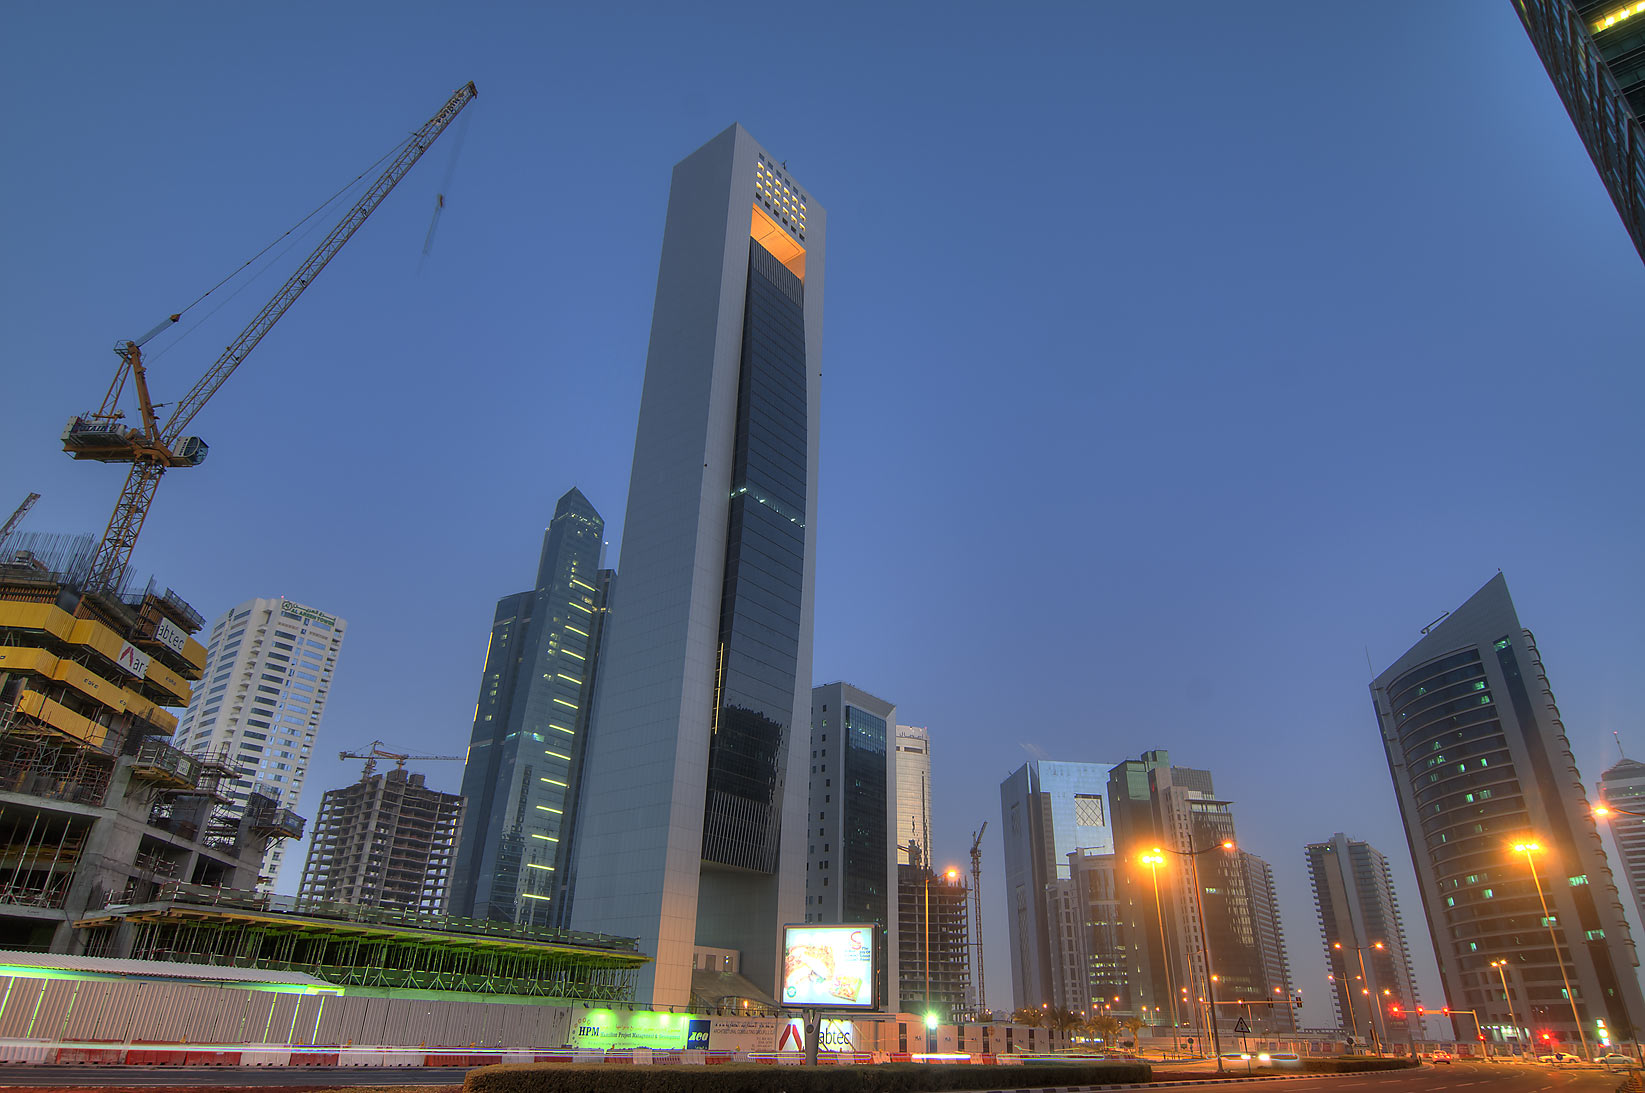 Al Faisal Tower in West Bay. Doha, Qatar